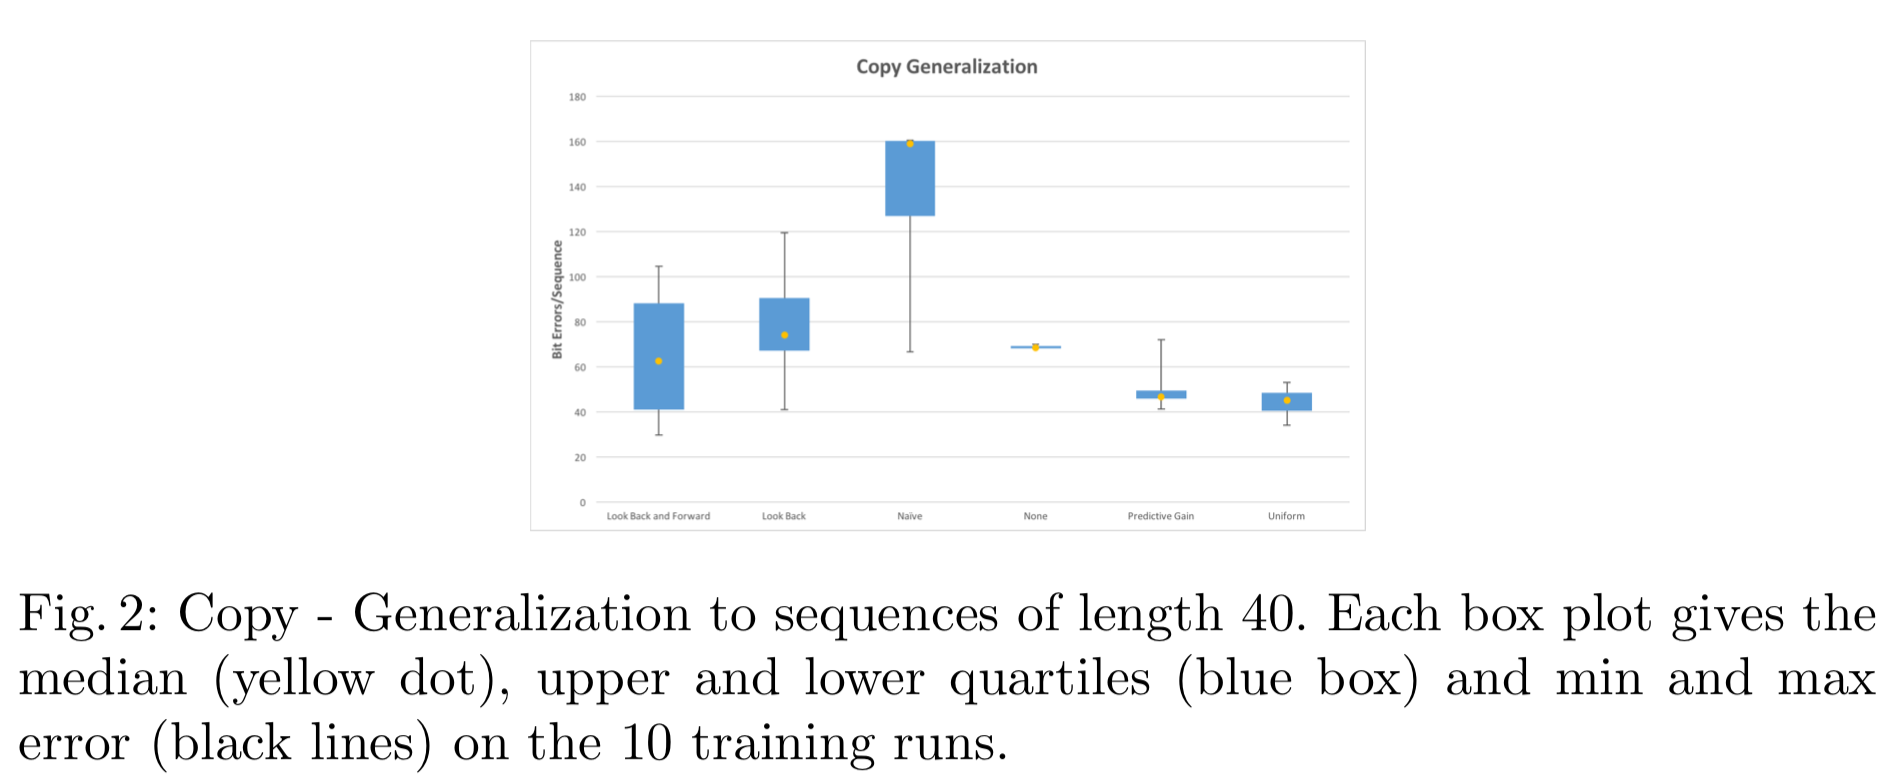 Fig. 2: Copy - Generalization to sequences of length 40. Each box plot gives the median (yellow dot), upper and lower quartiles (blue box) and min and max error (black lines) on the 10 training runs.